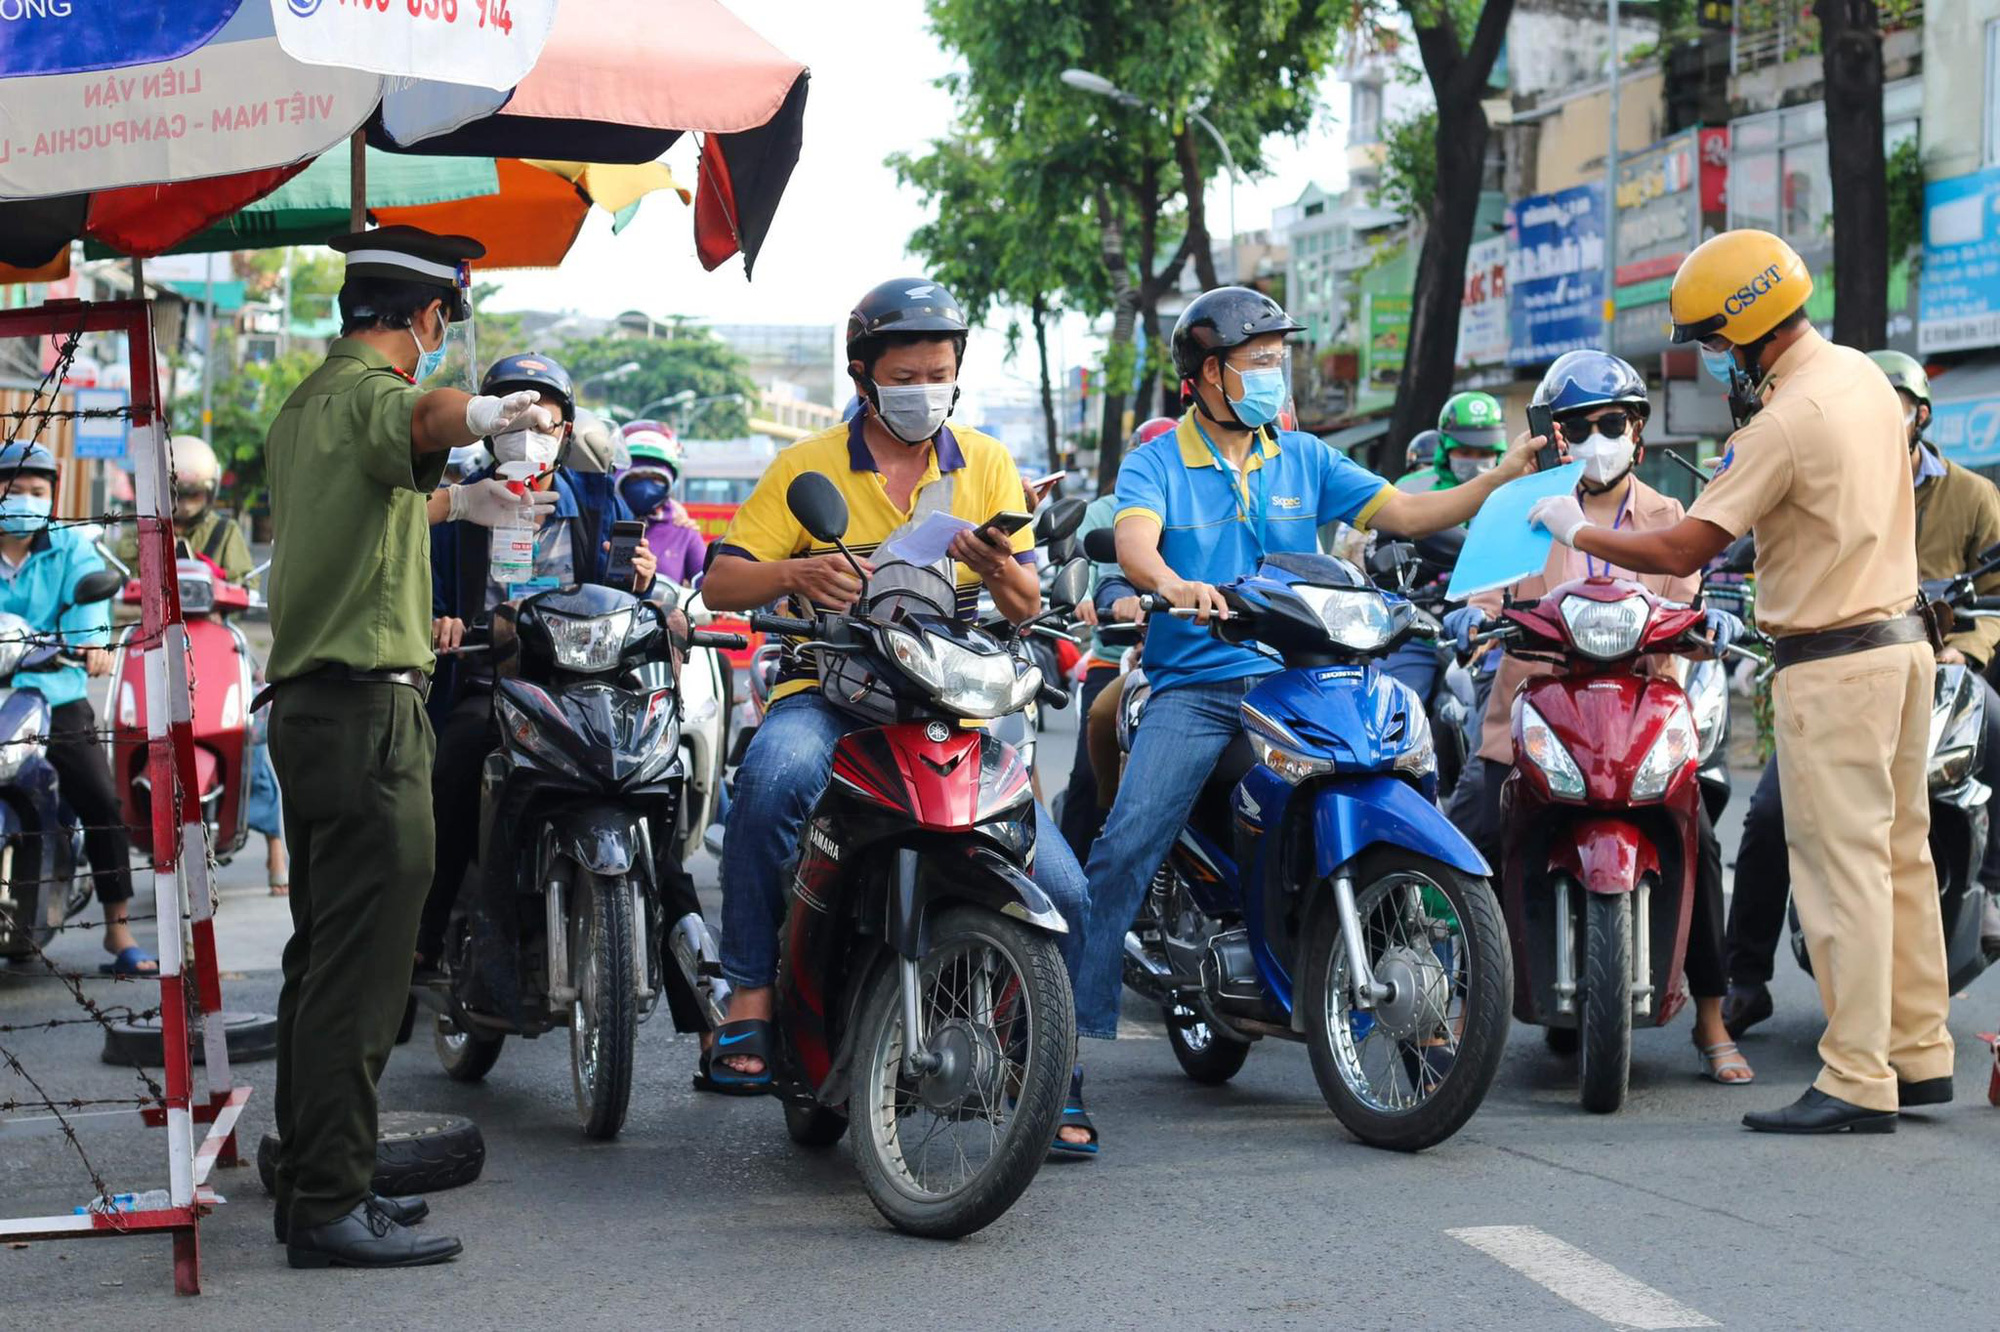 Congestion at a COVID-19 checkpoint on Nguyen Kiem Street in Go Vap District, Ho Chi Minh City, September 20, 2021. Photo: Chau Tuan / Tuoi Tre